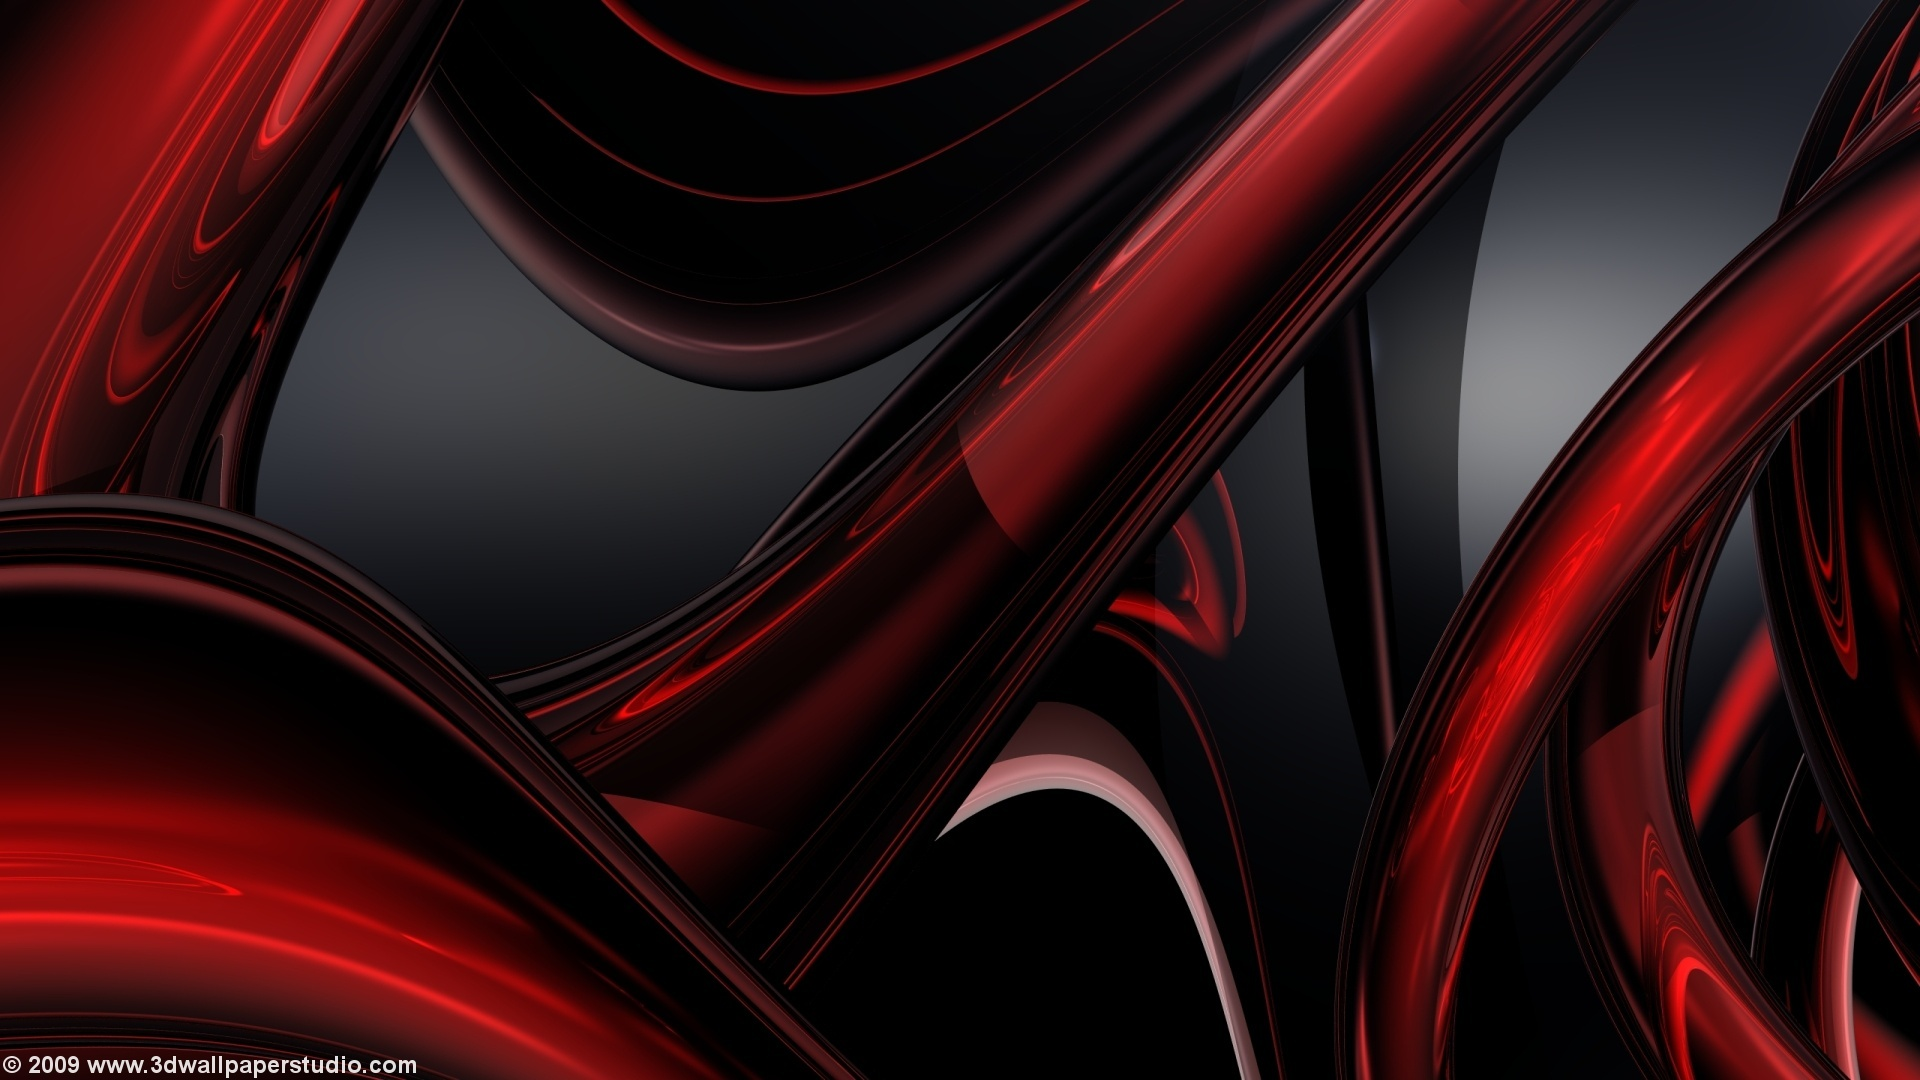 Red Abstract Desktop Backgrounds 1920x1080